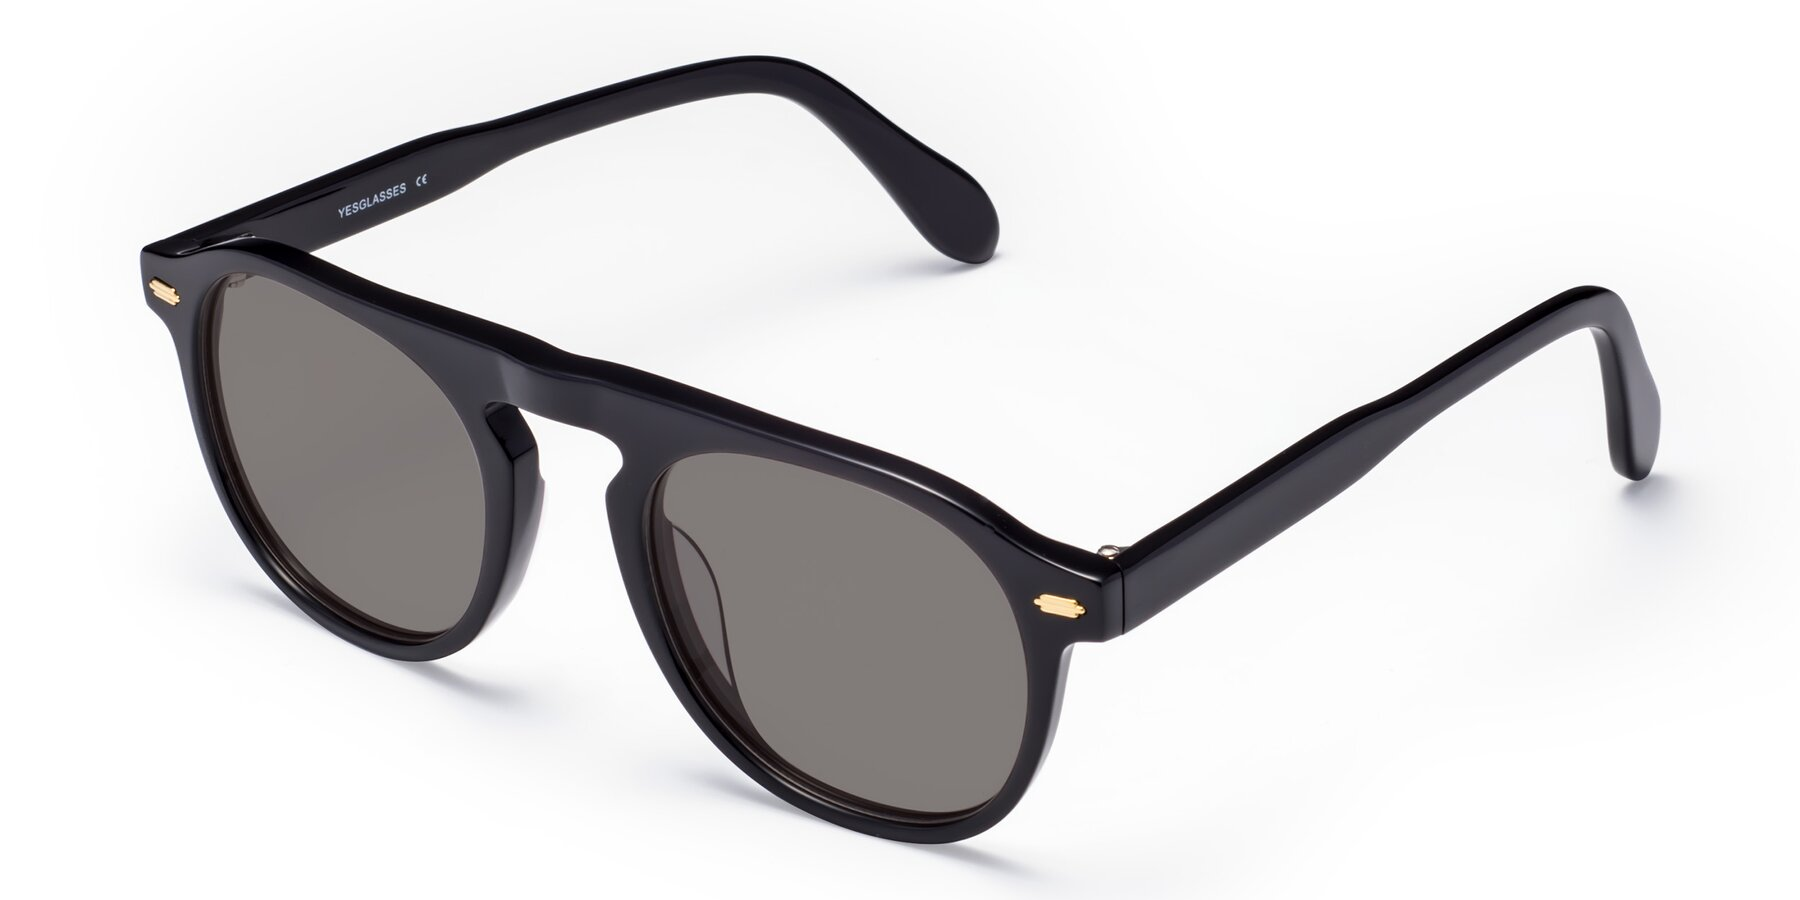 Angle of Mufasa in Black with Medium Gray Tinted Lenses